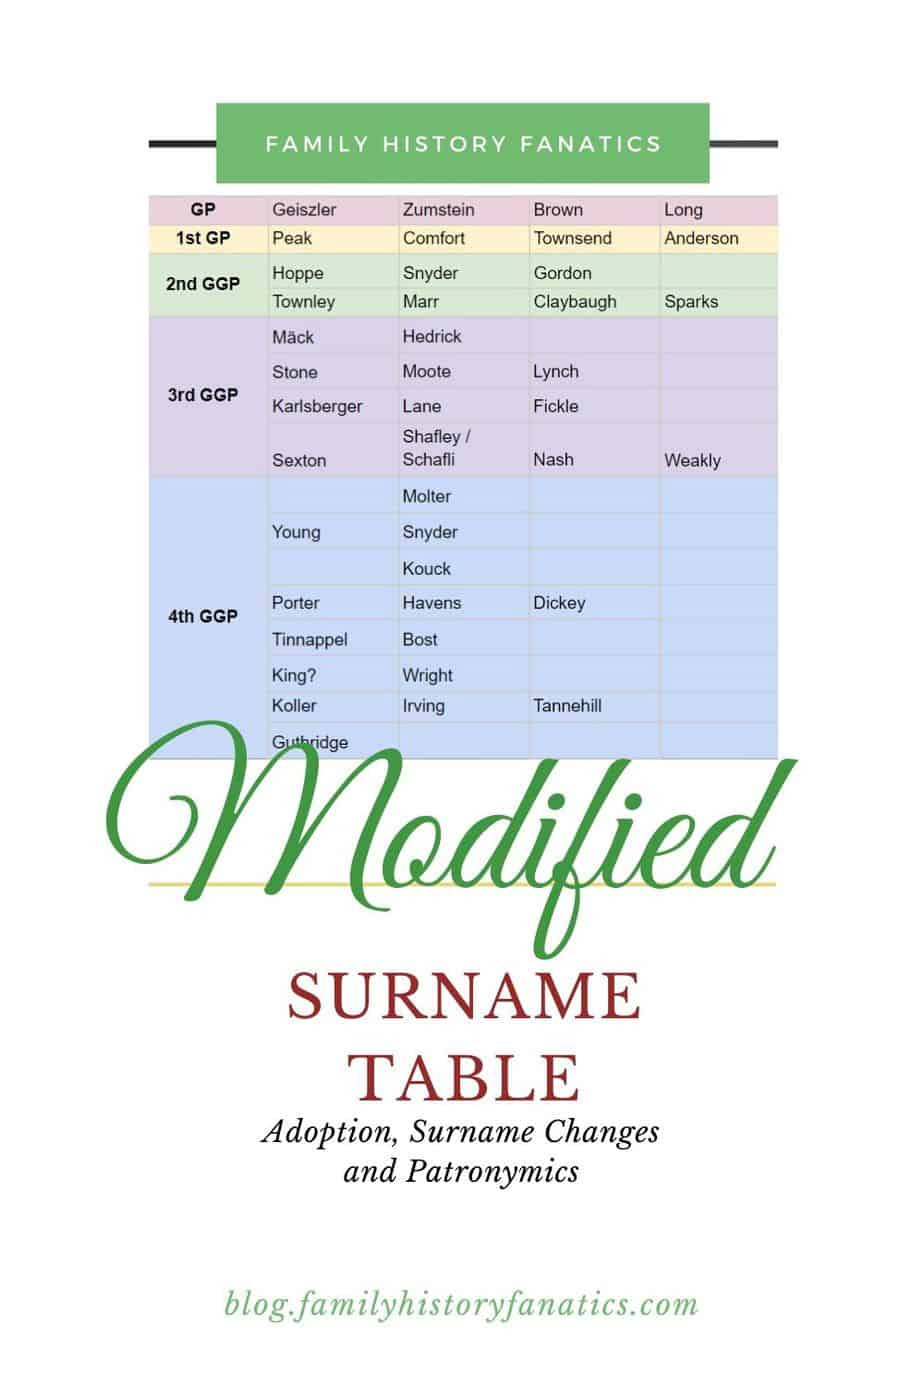 surname table with text - Modified Surname Tables for adoption, surname changes, and patronymics